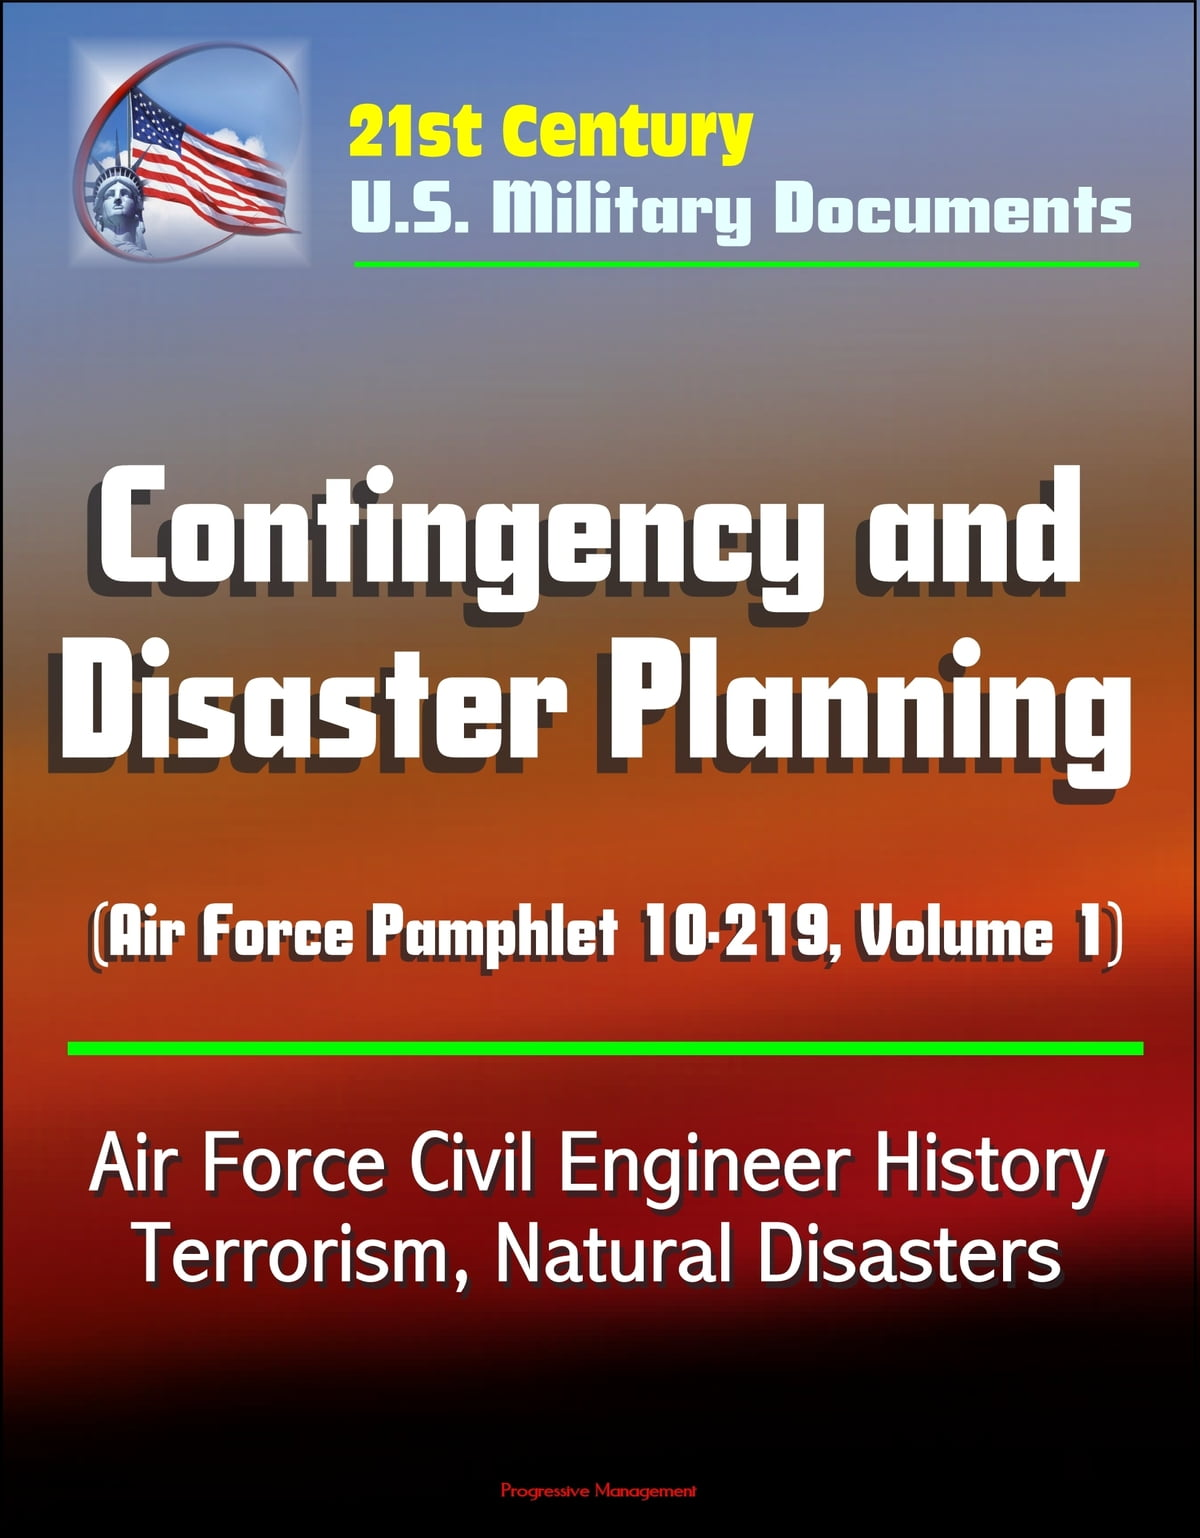 21st Century U S  Military Documents: Contingency and Disaster Planning  (Air Force Pamphlet 10-219, Volume 1) - Air Force Civil Engineer History,